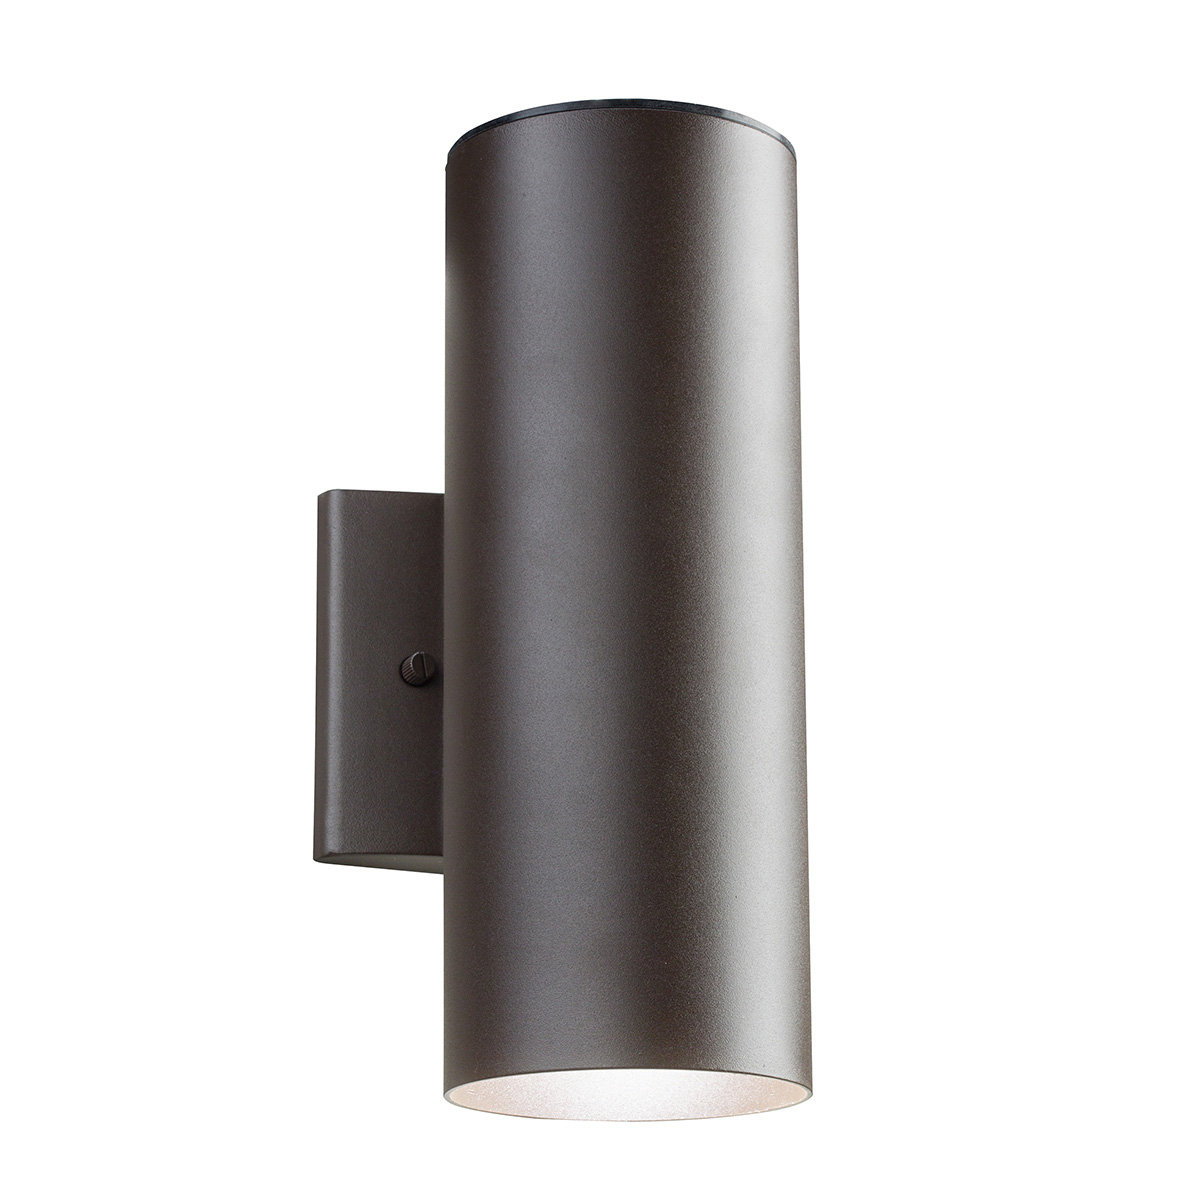 11251 Outdoor LED Up/Down Wall Sconce by Kichler | 11251AZT30